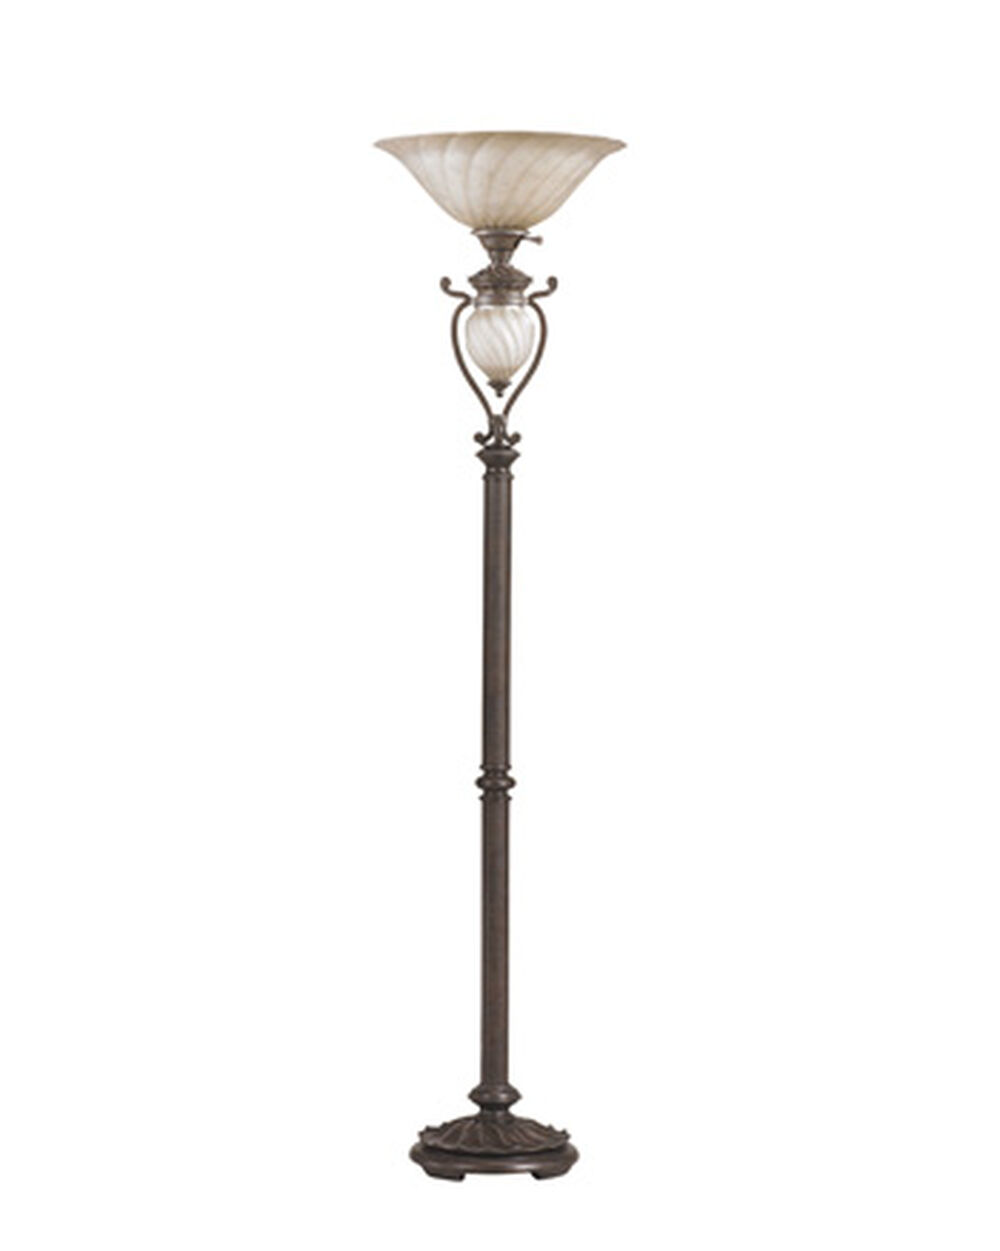 Transitional Glass Shade Torchiere Floor Lamp In Aged Brown Mathis